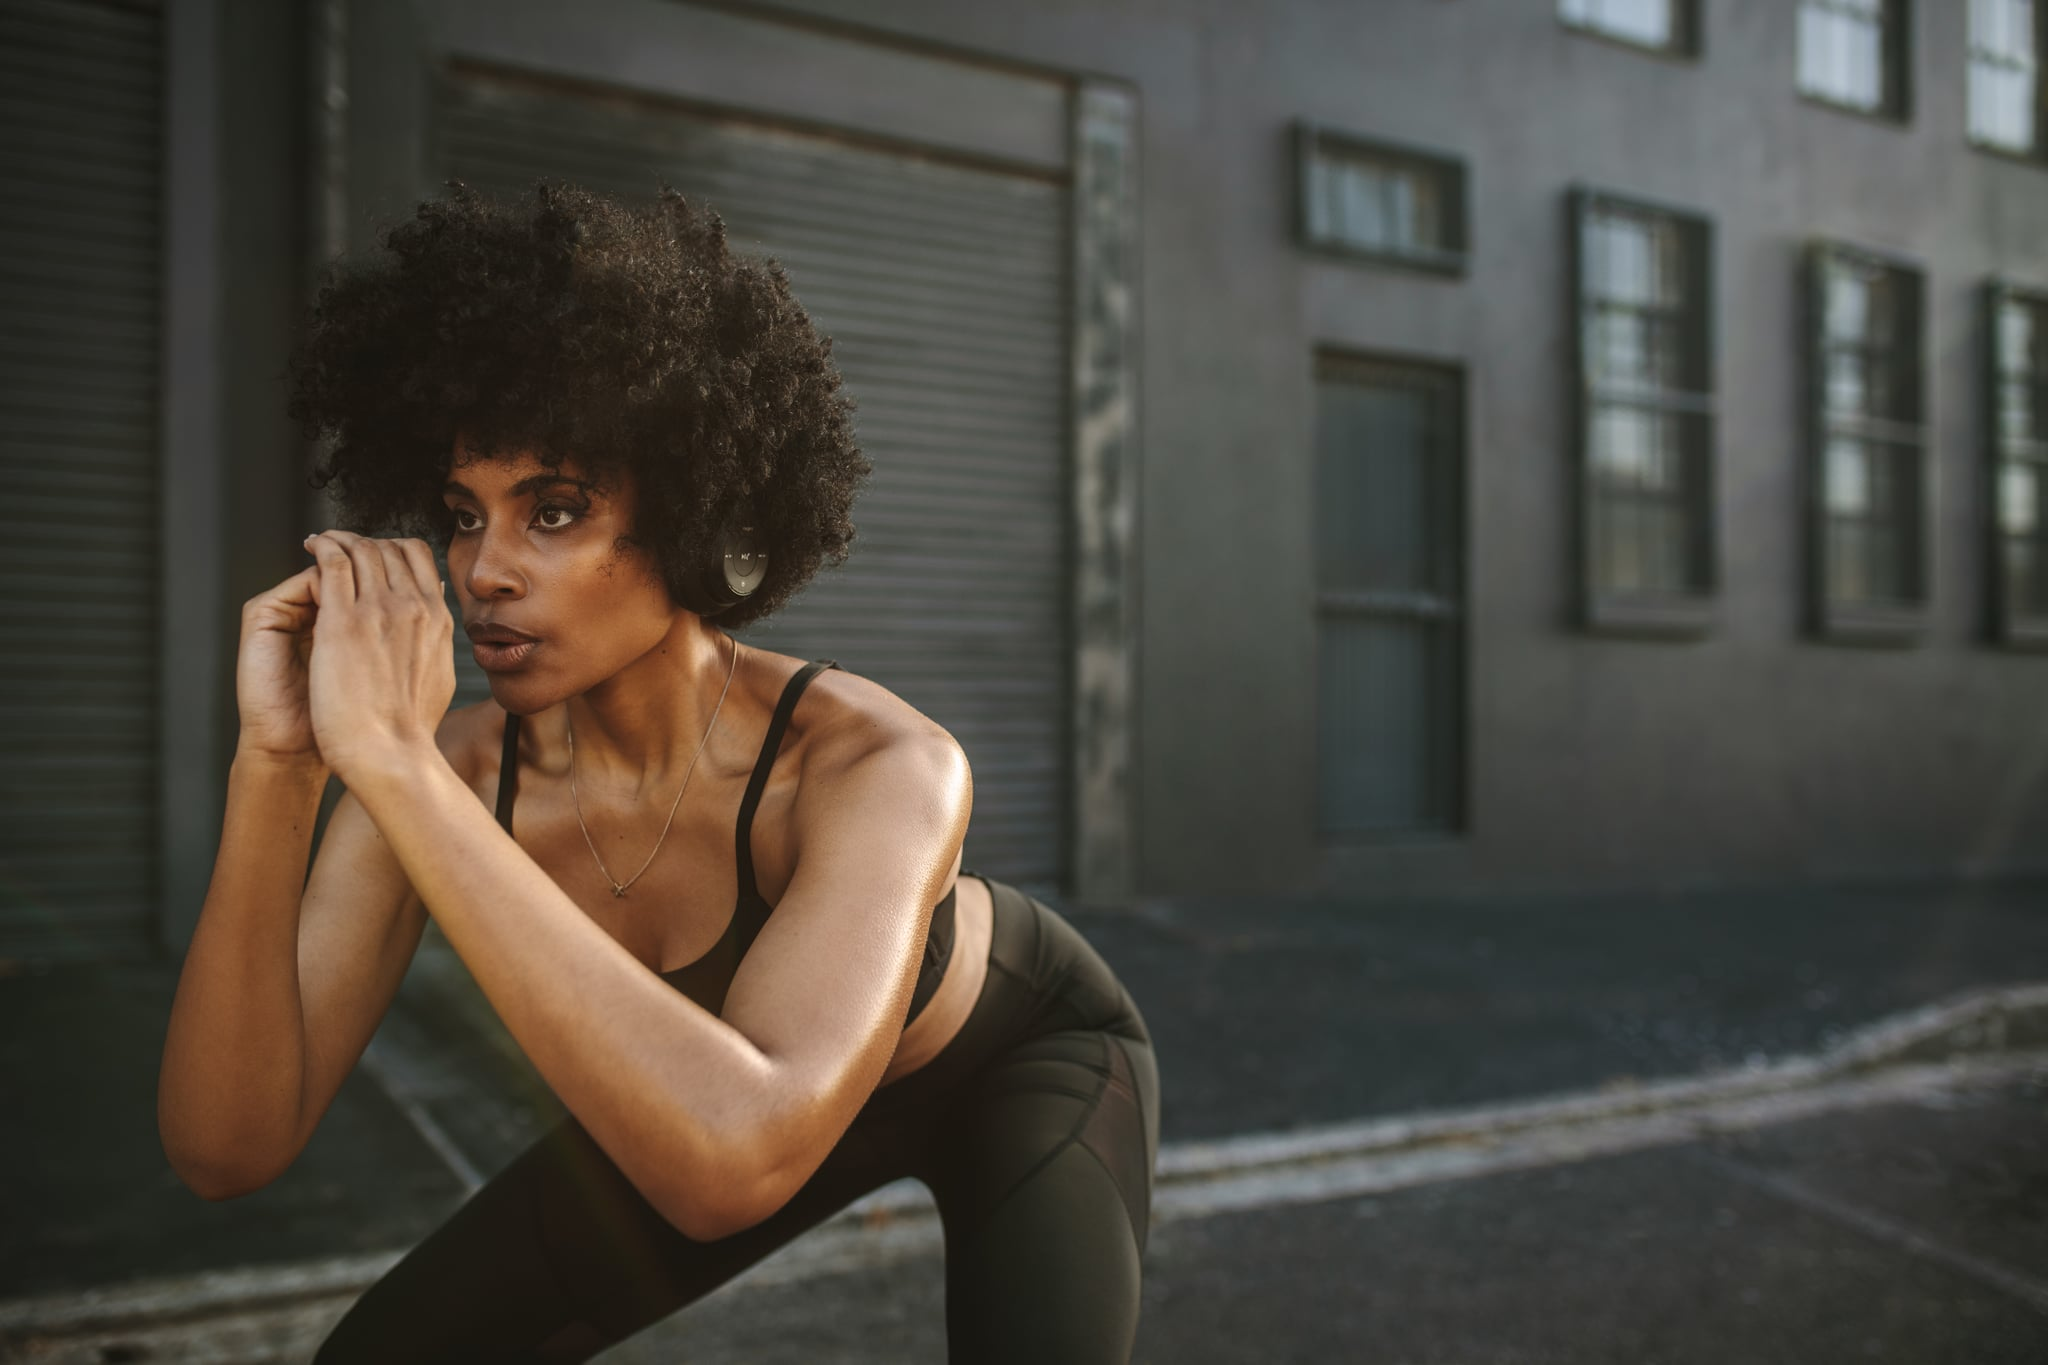 Young woman practicing squats in city. Female athlete exercising outdoors in morning.